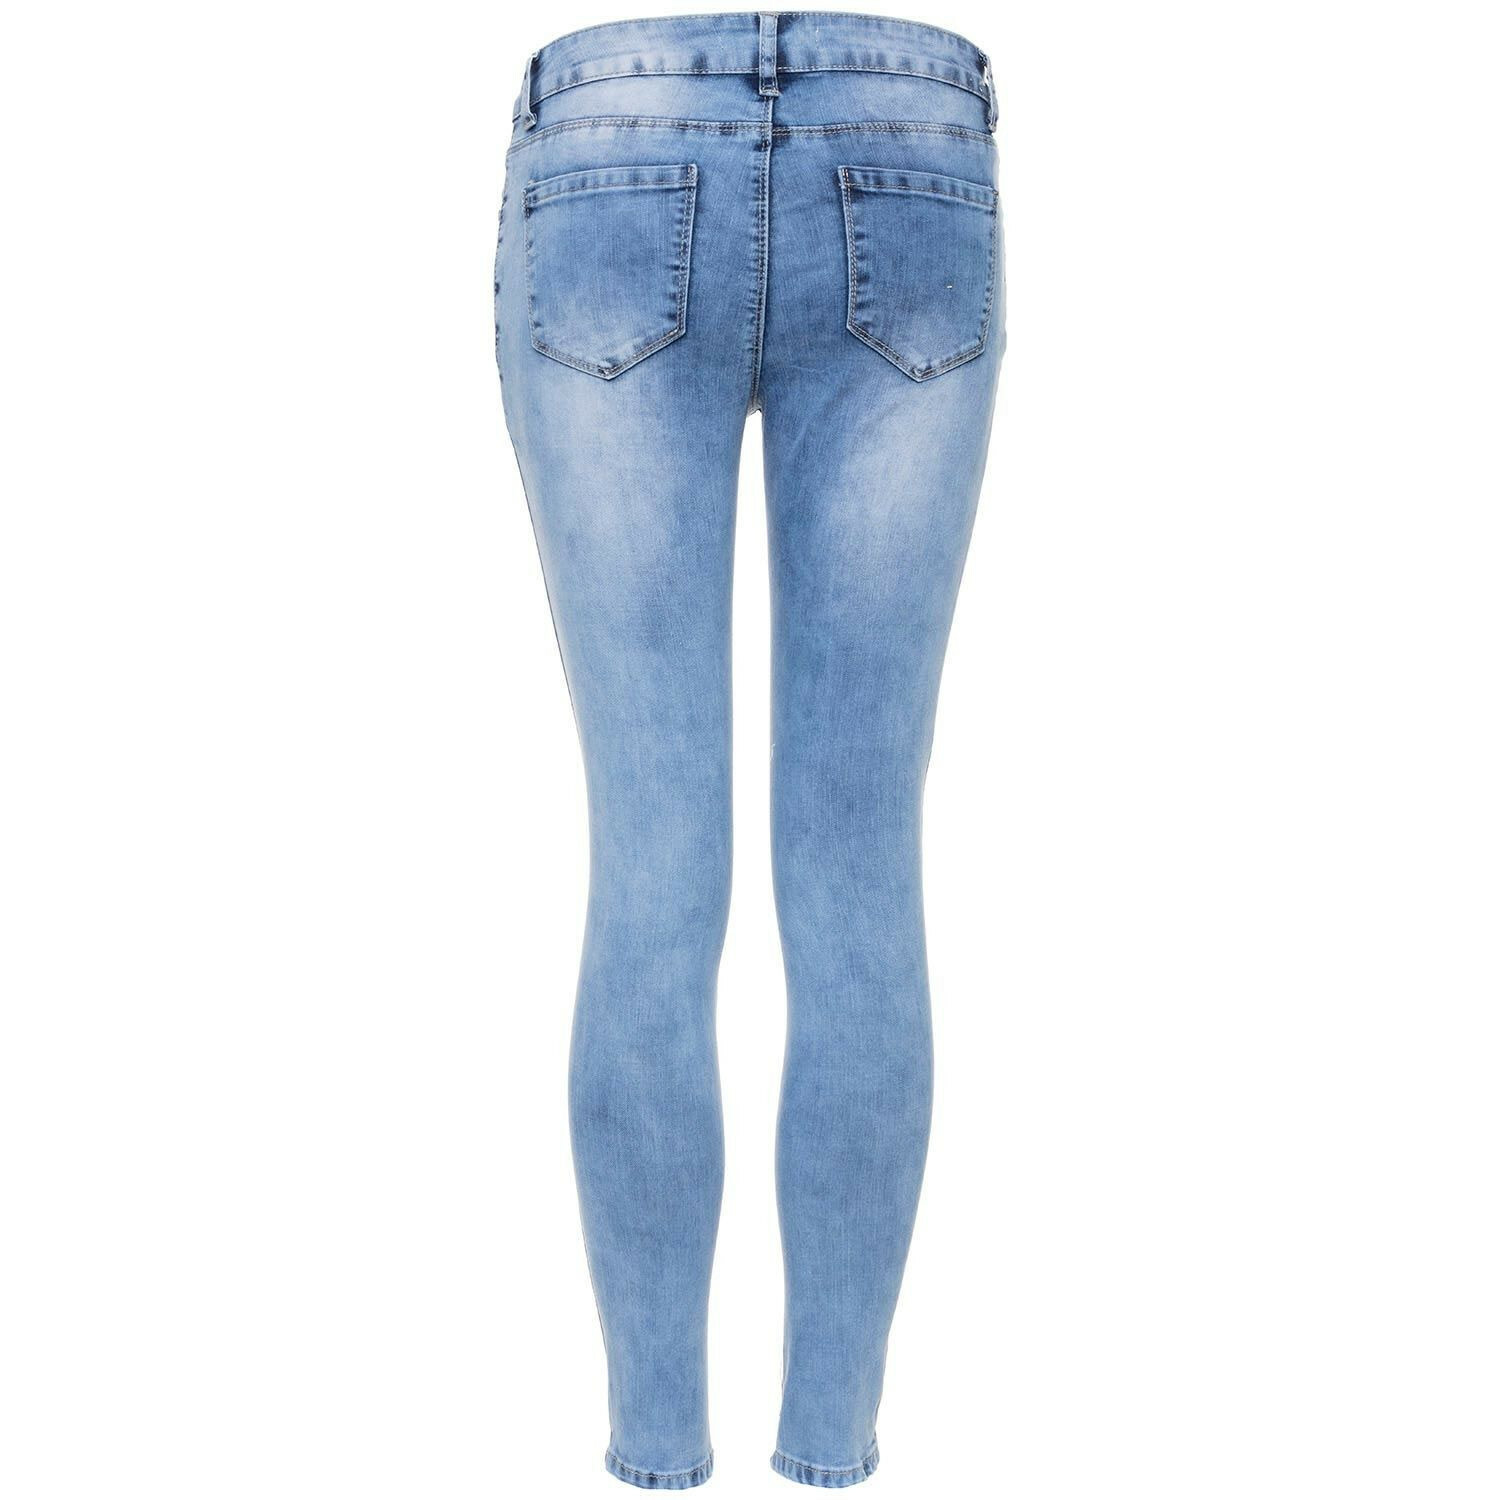 EDGY RIPPED SKINNY JEANS